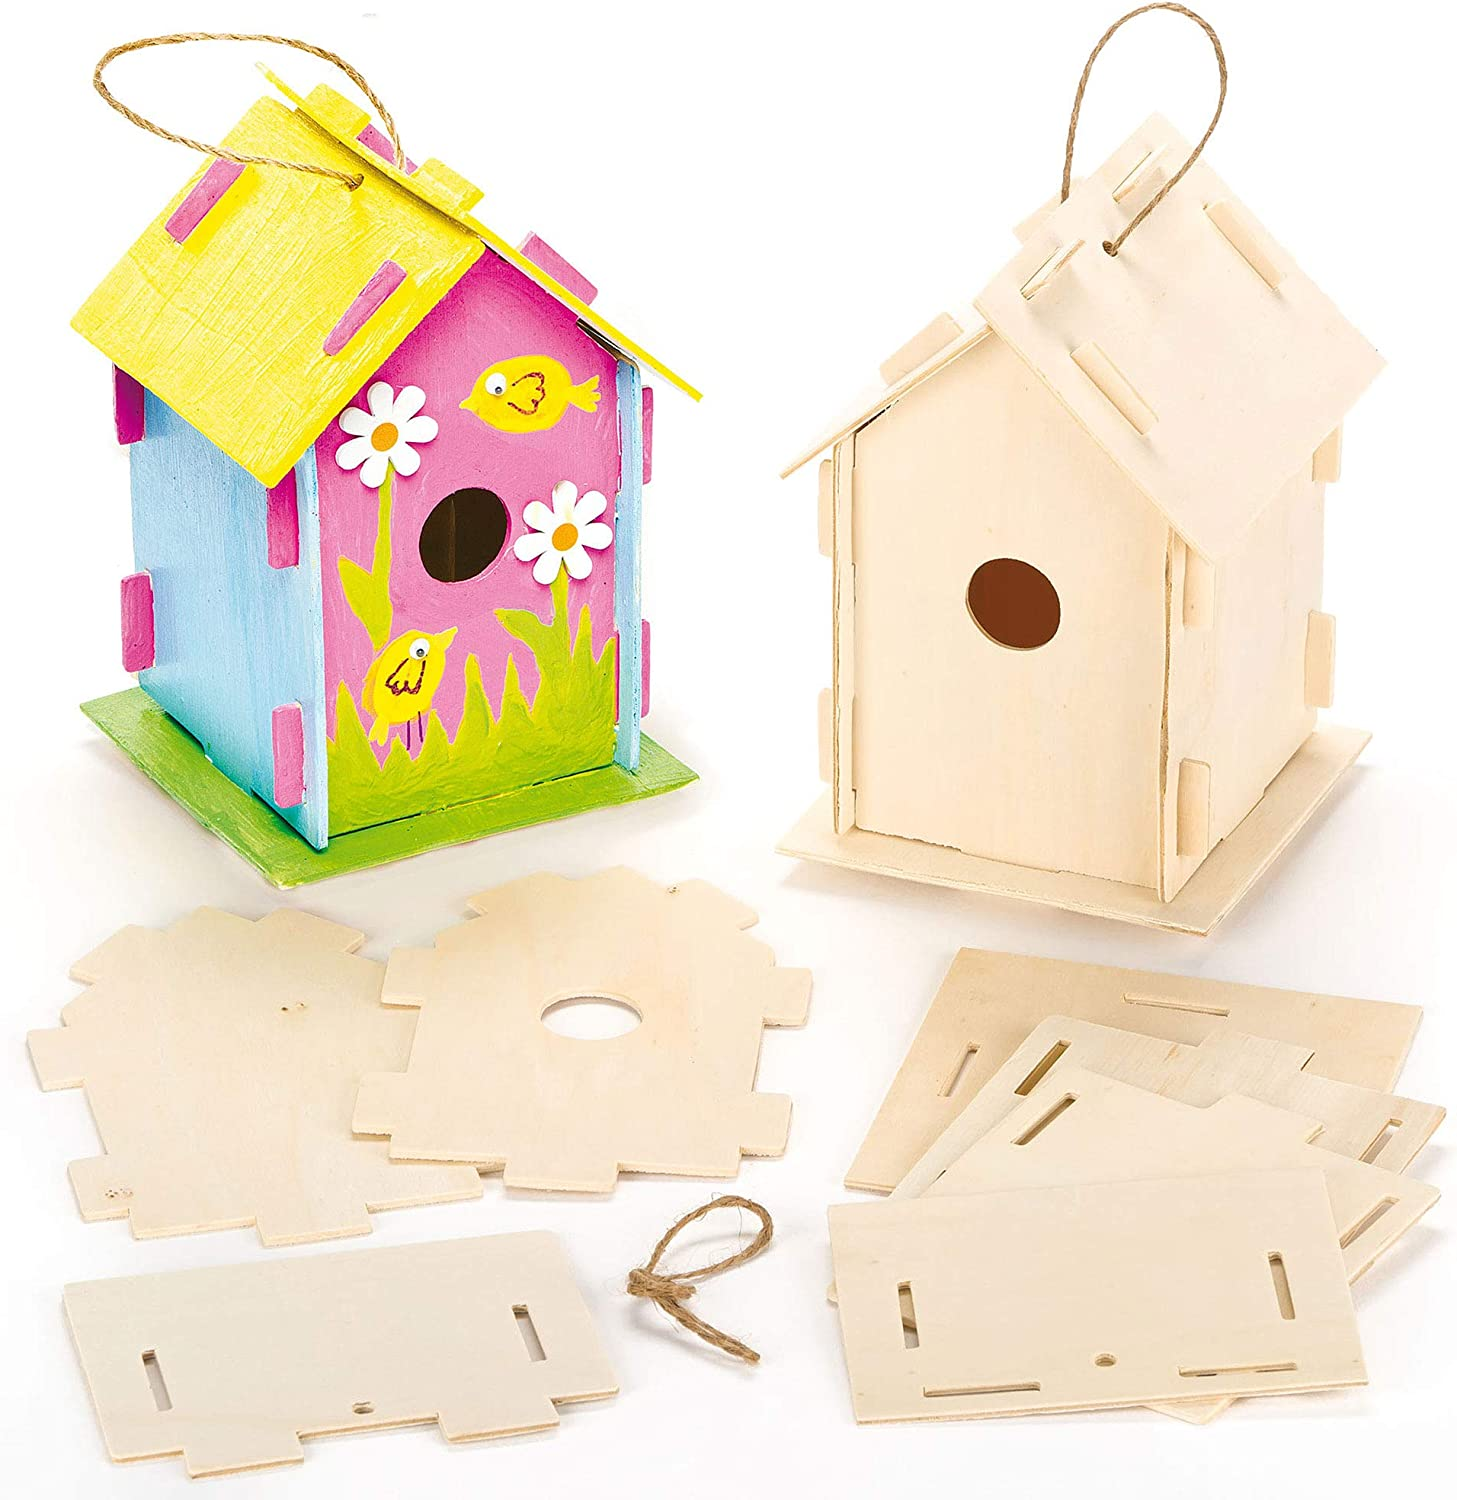 Baker Ross Ef665 Wooden Birdhouse Kits Pack Of 2 For Kids To Make Decorate Amazon Co Uk Kitchen Home